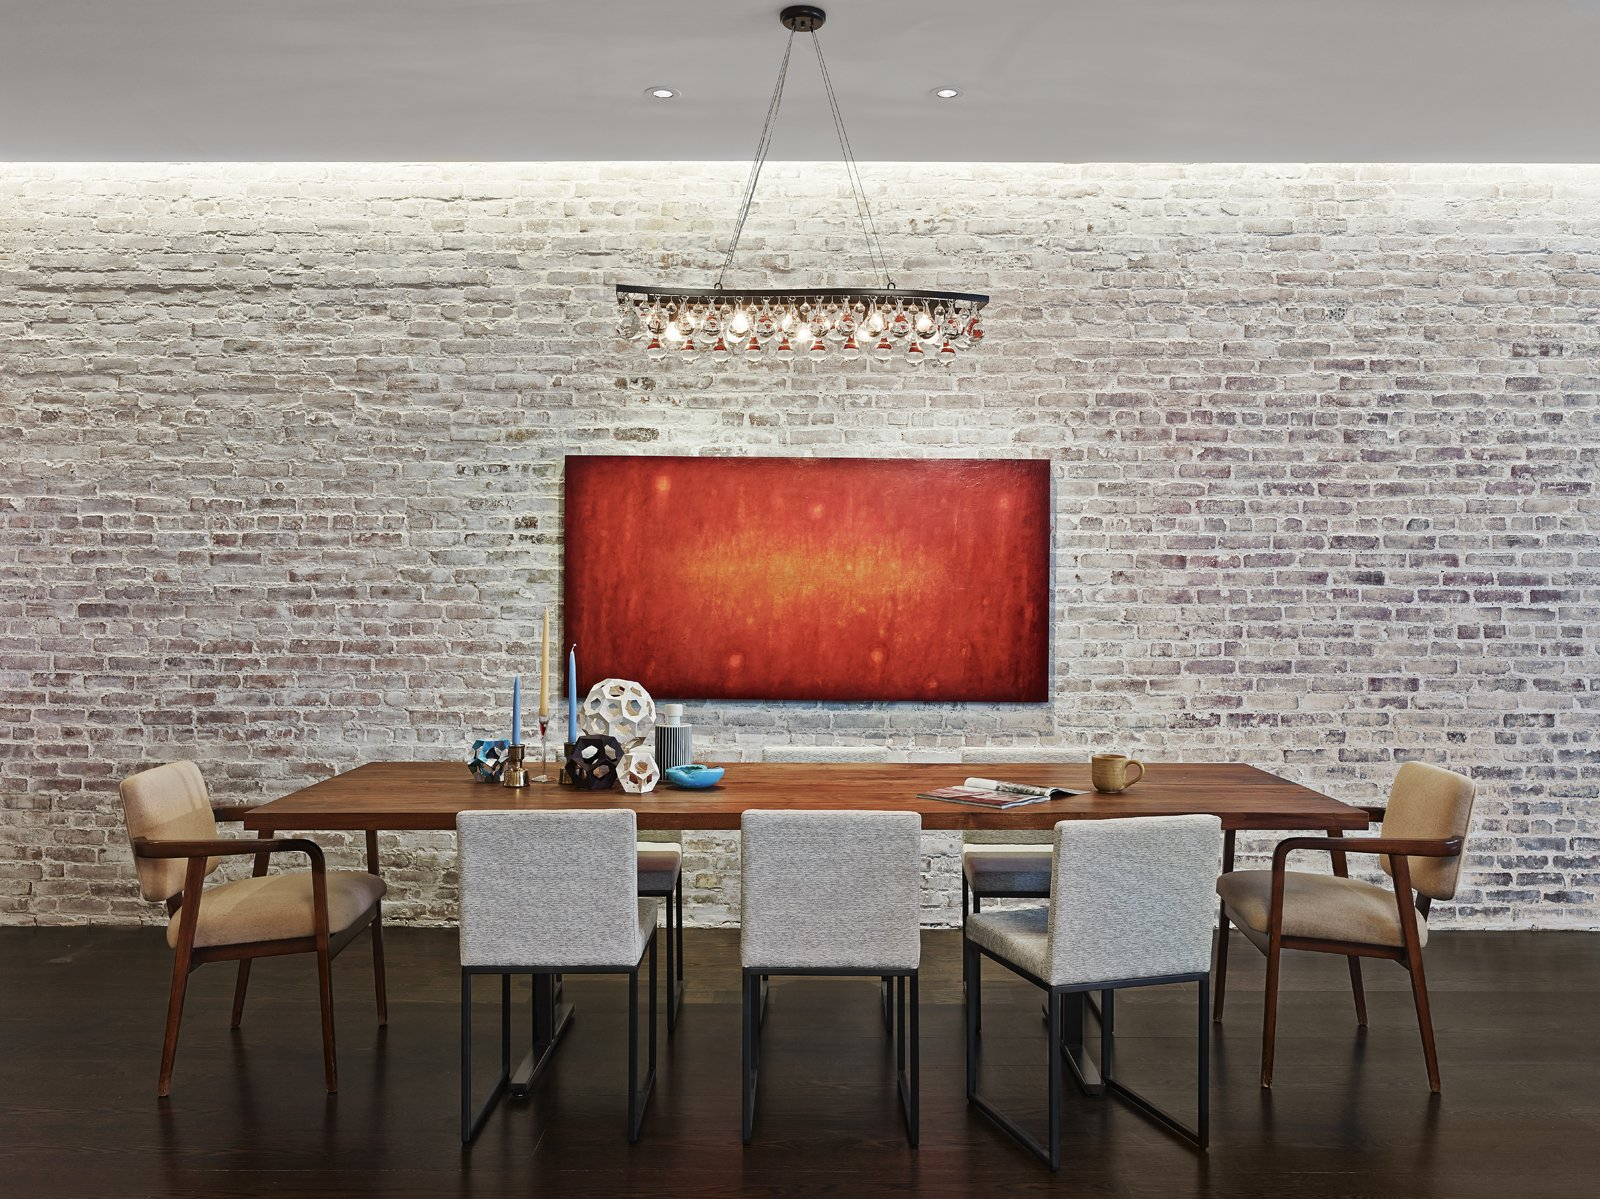 """The brick wall adjacent to the custom dining table by Brooklyn-based Uhuru Design is original to the structure. 590BC and its team spent months trying to find the right translucency for the whitewash covering the brick. """"We call it the 'selective loft' because of the contrast of the refined materials and cabinetry against the industrial materials of this former light bulb factory,"""" says Breitner. Photo by Frank Oudeman.  Photo 7 of 10 in Revealing the Pros and Cons of Exposed Brick and How to Take Care of It from A Renovated Loft in SoHo"""